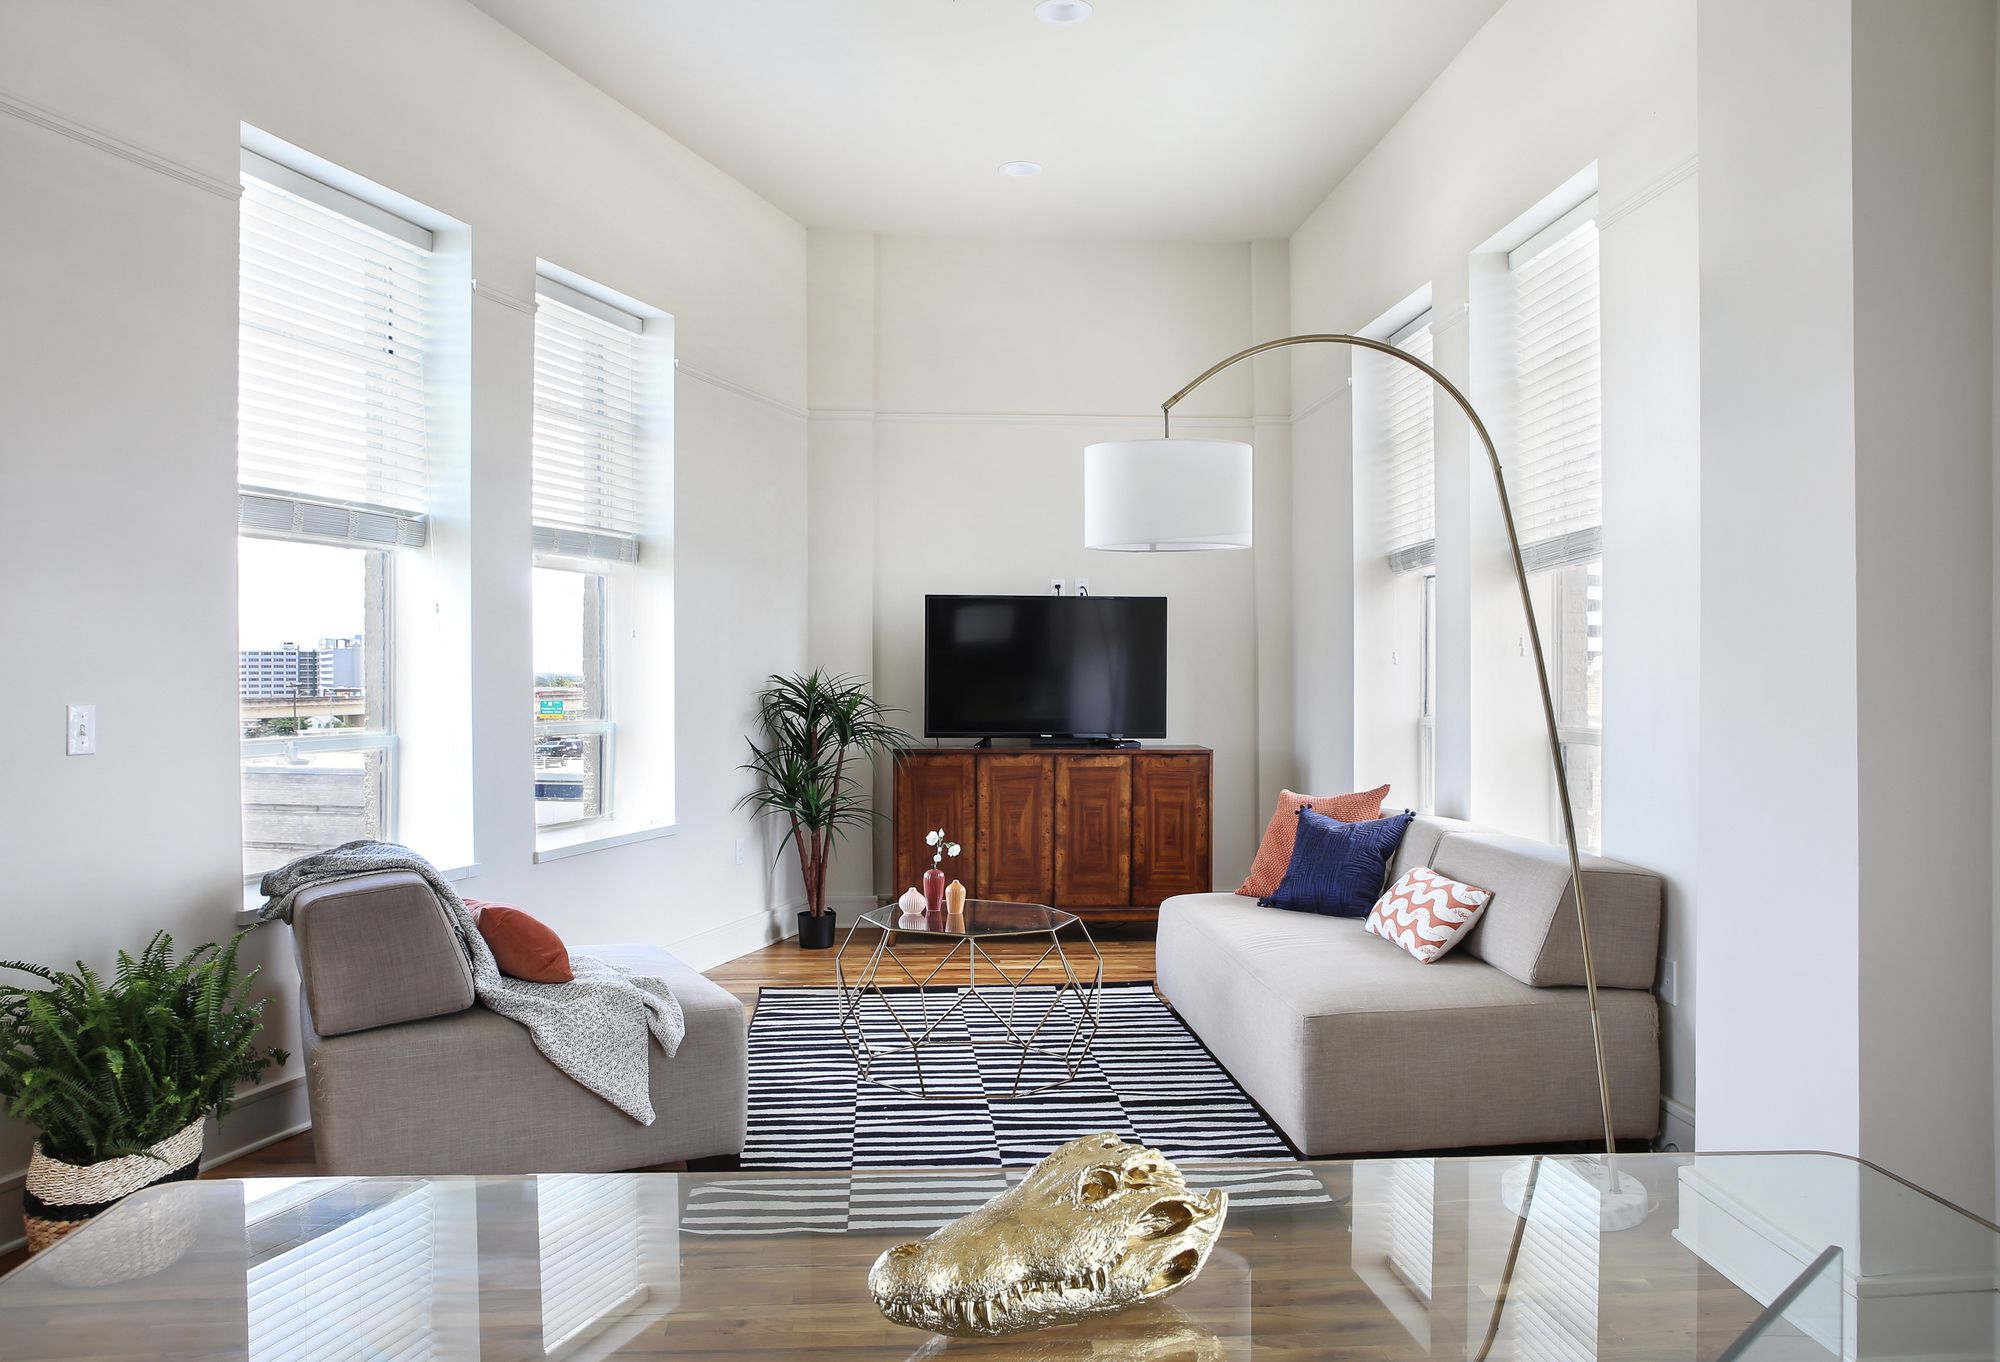 Penthouse 2BR in C.B.D. by Sonder